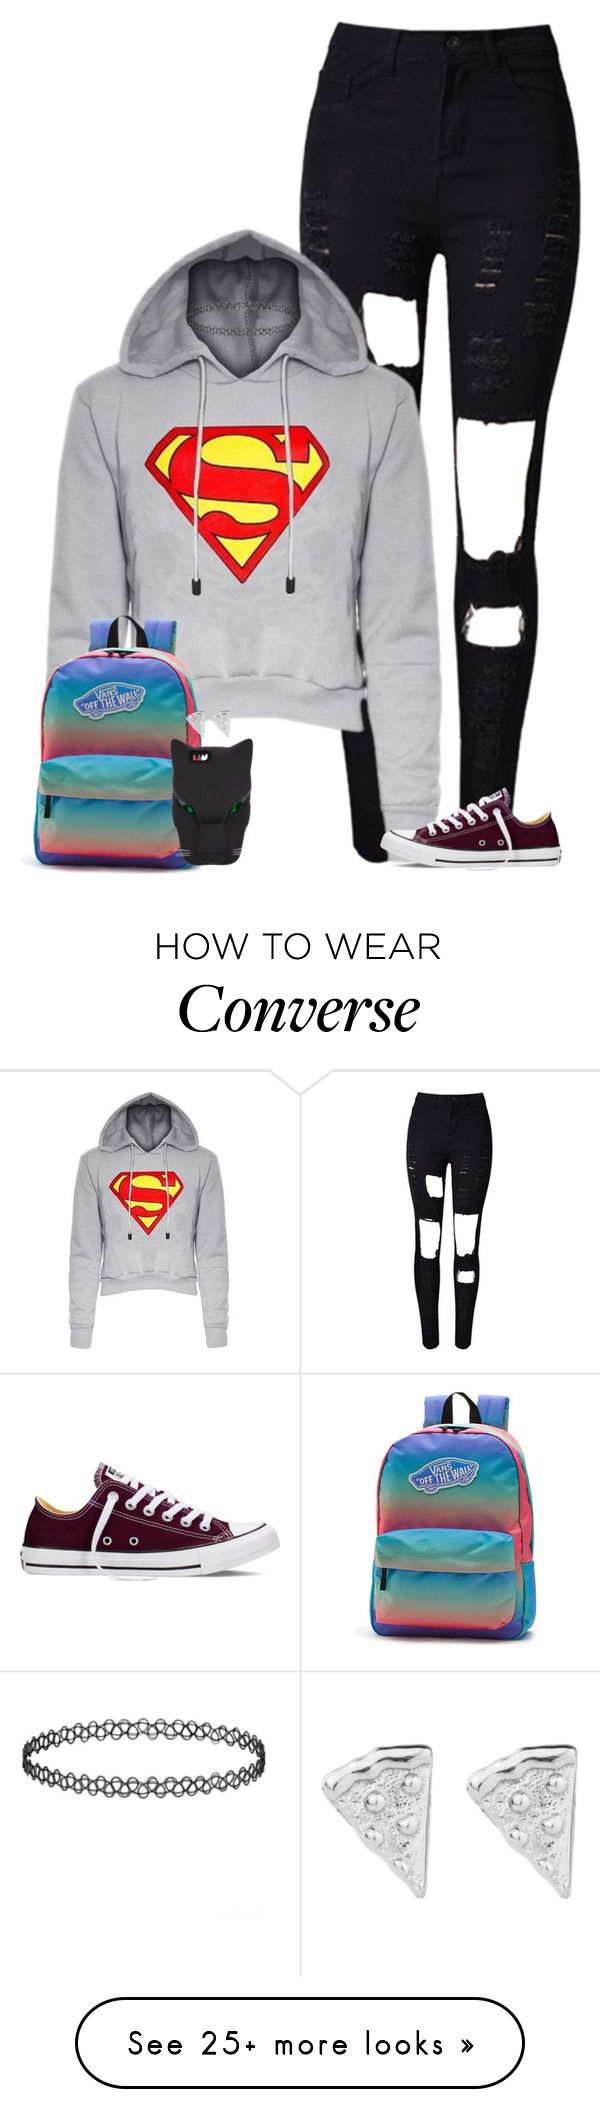 """Super Geek"" by the-l0st-girl on Polyvore featuring Converse, Vans, STELLA McCARTNEY, women's clothing, women, female, woman, misses and juniors"